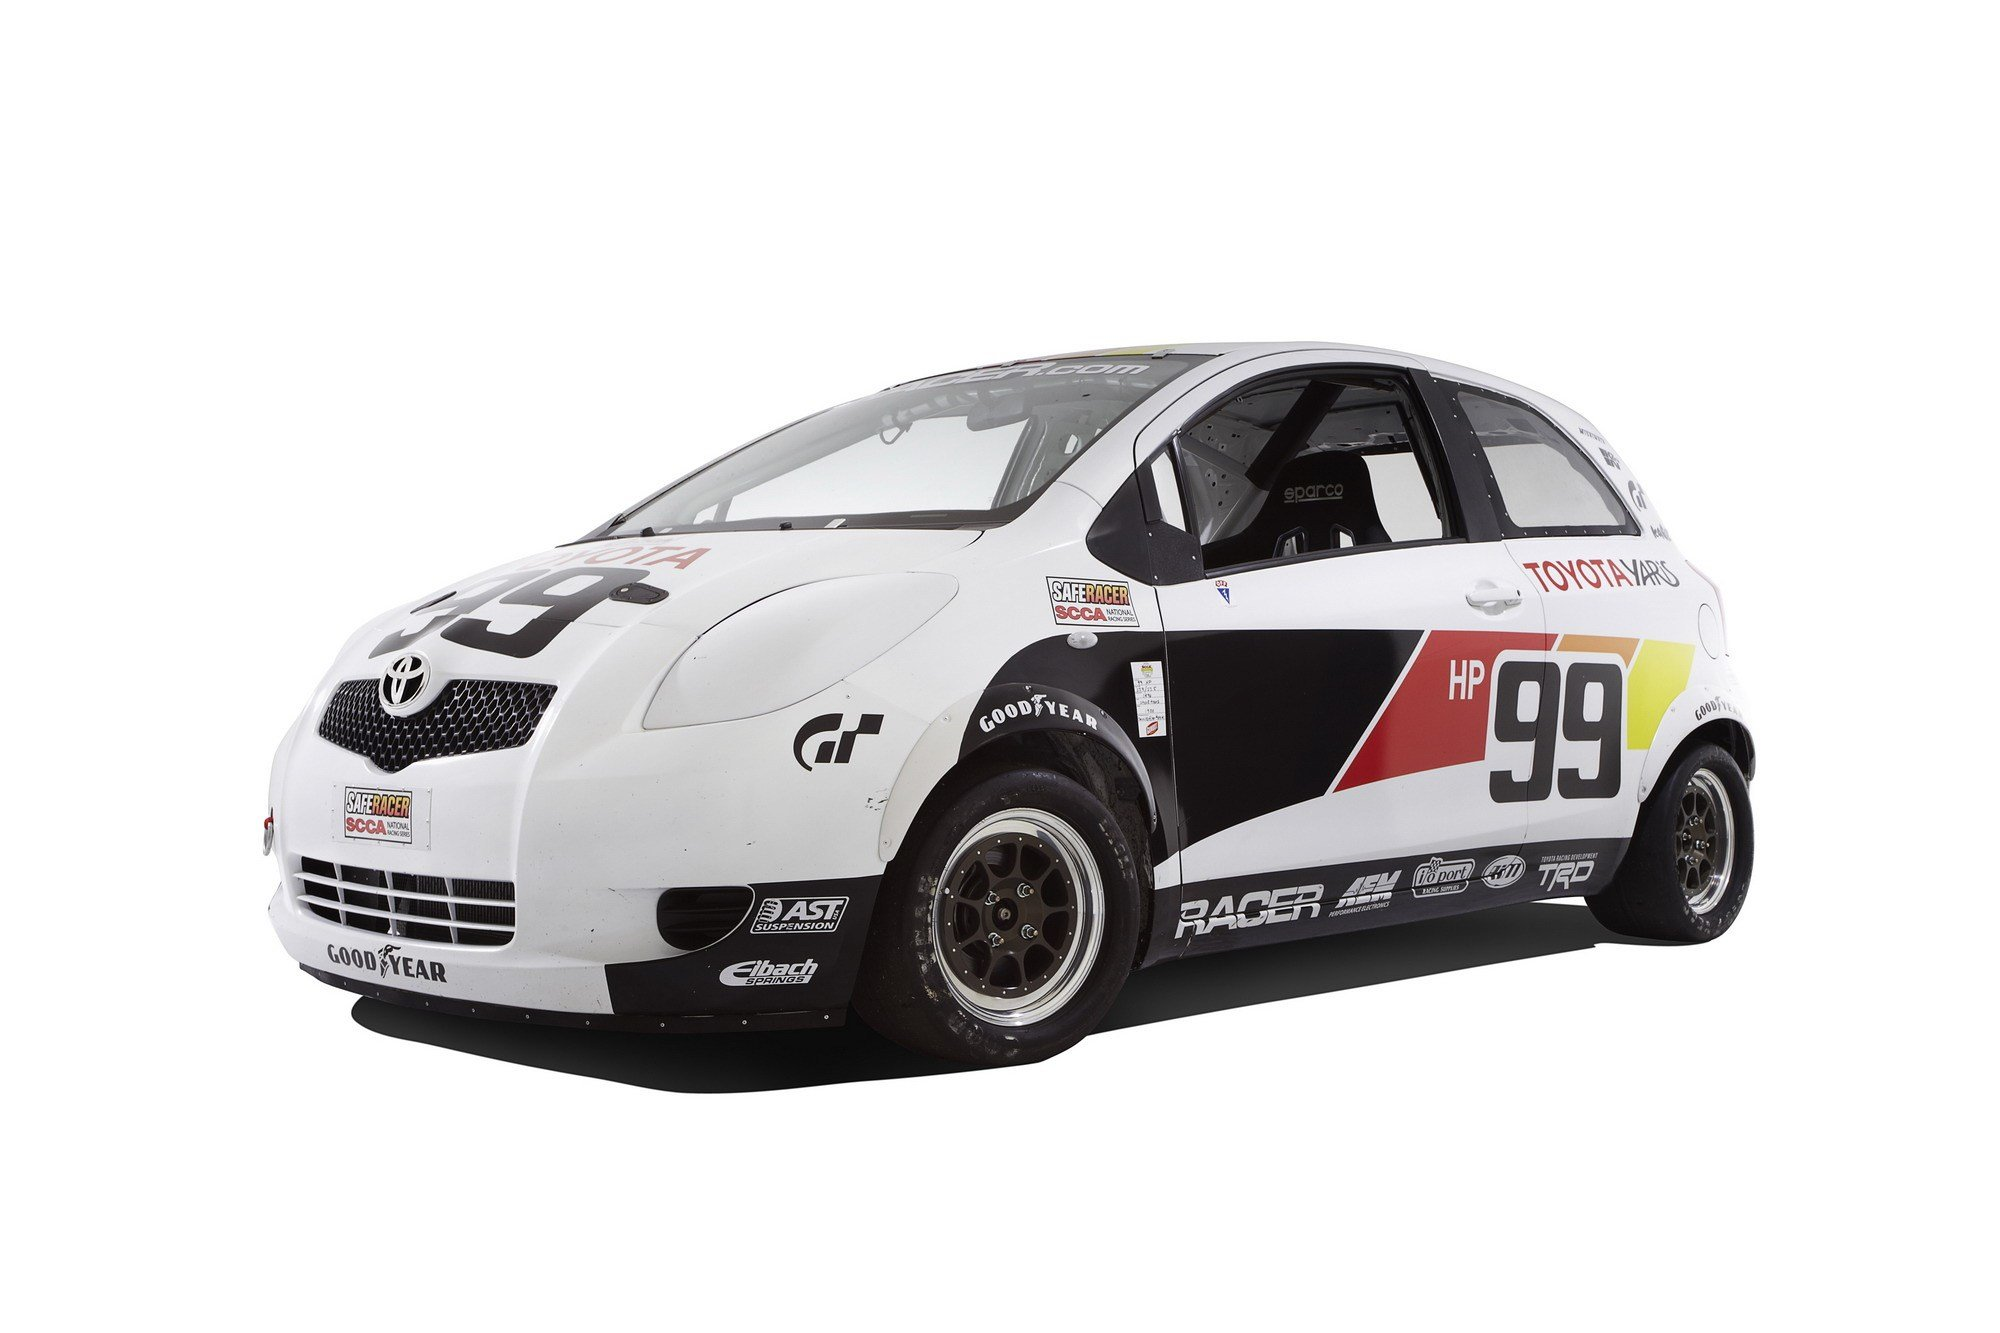 Latest 2010 Toyota Yaris Gt S Club Racer Top Speed Free Download